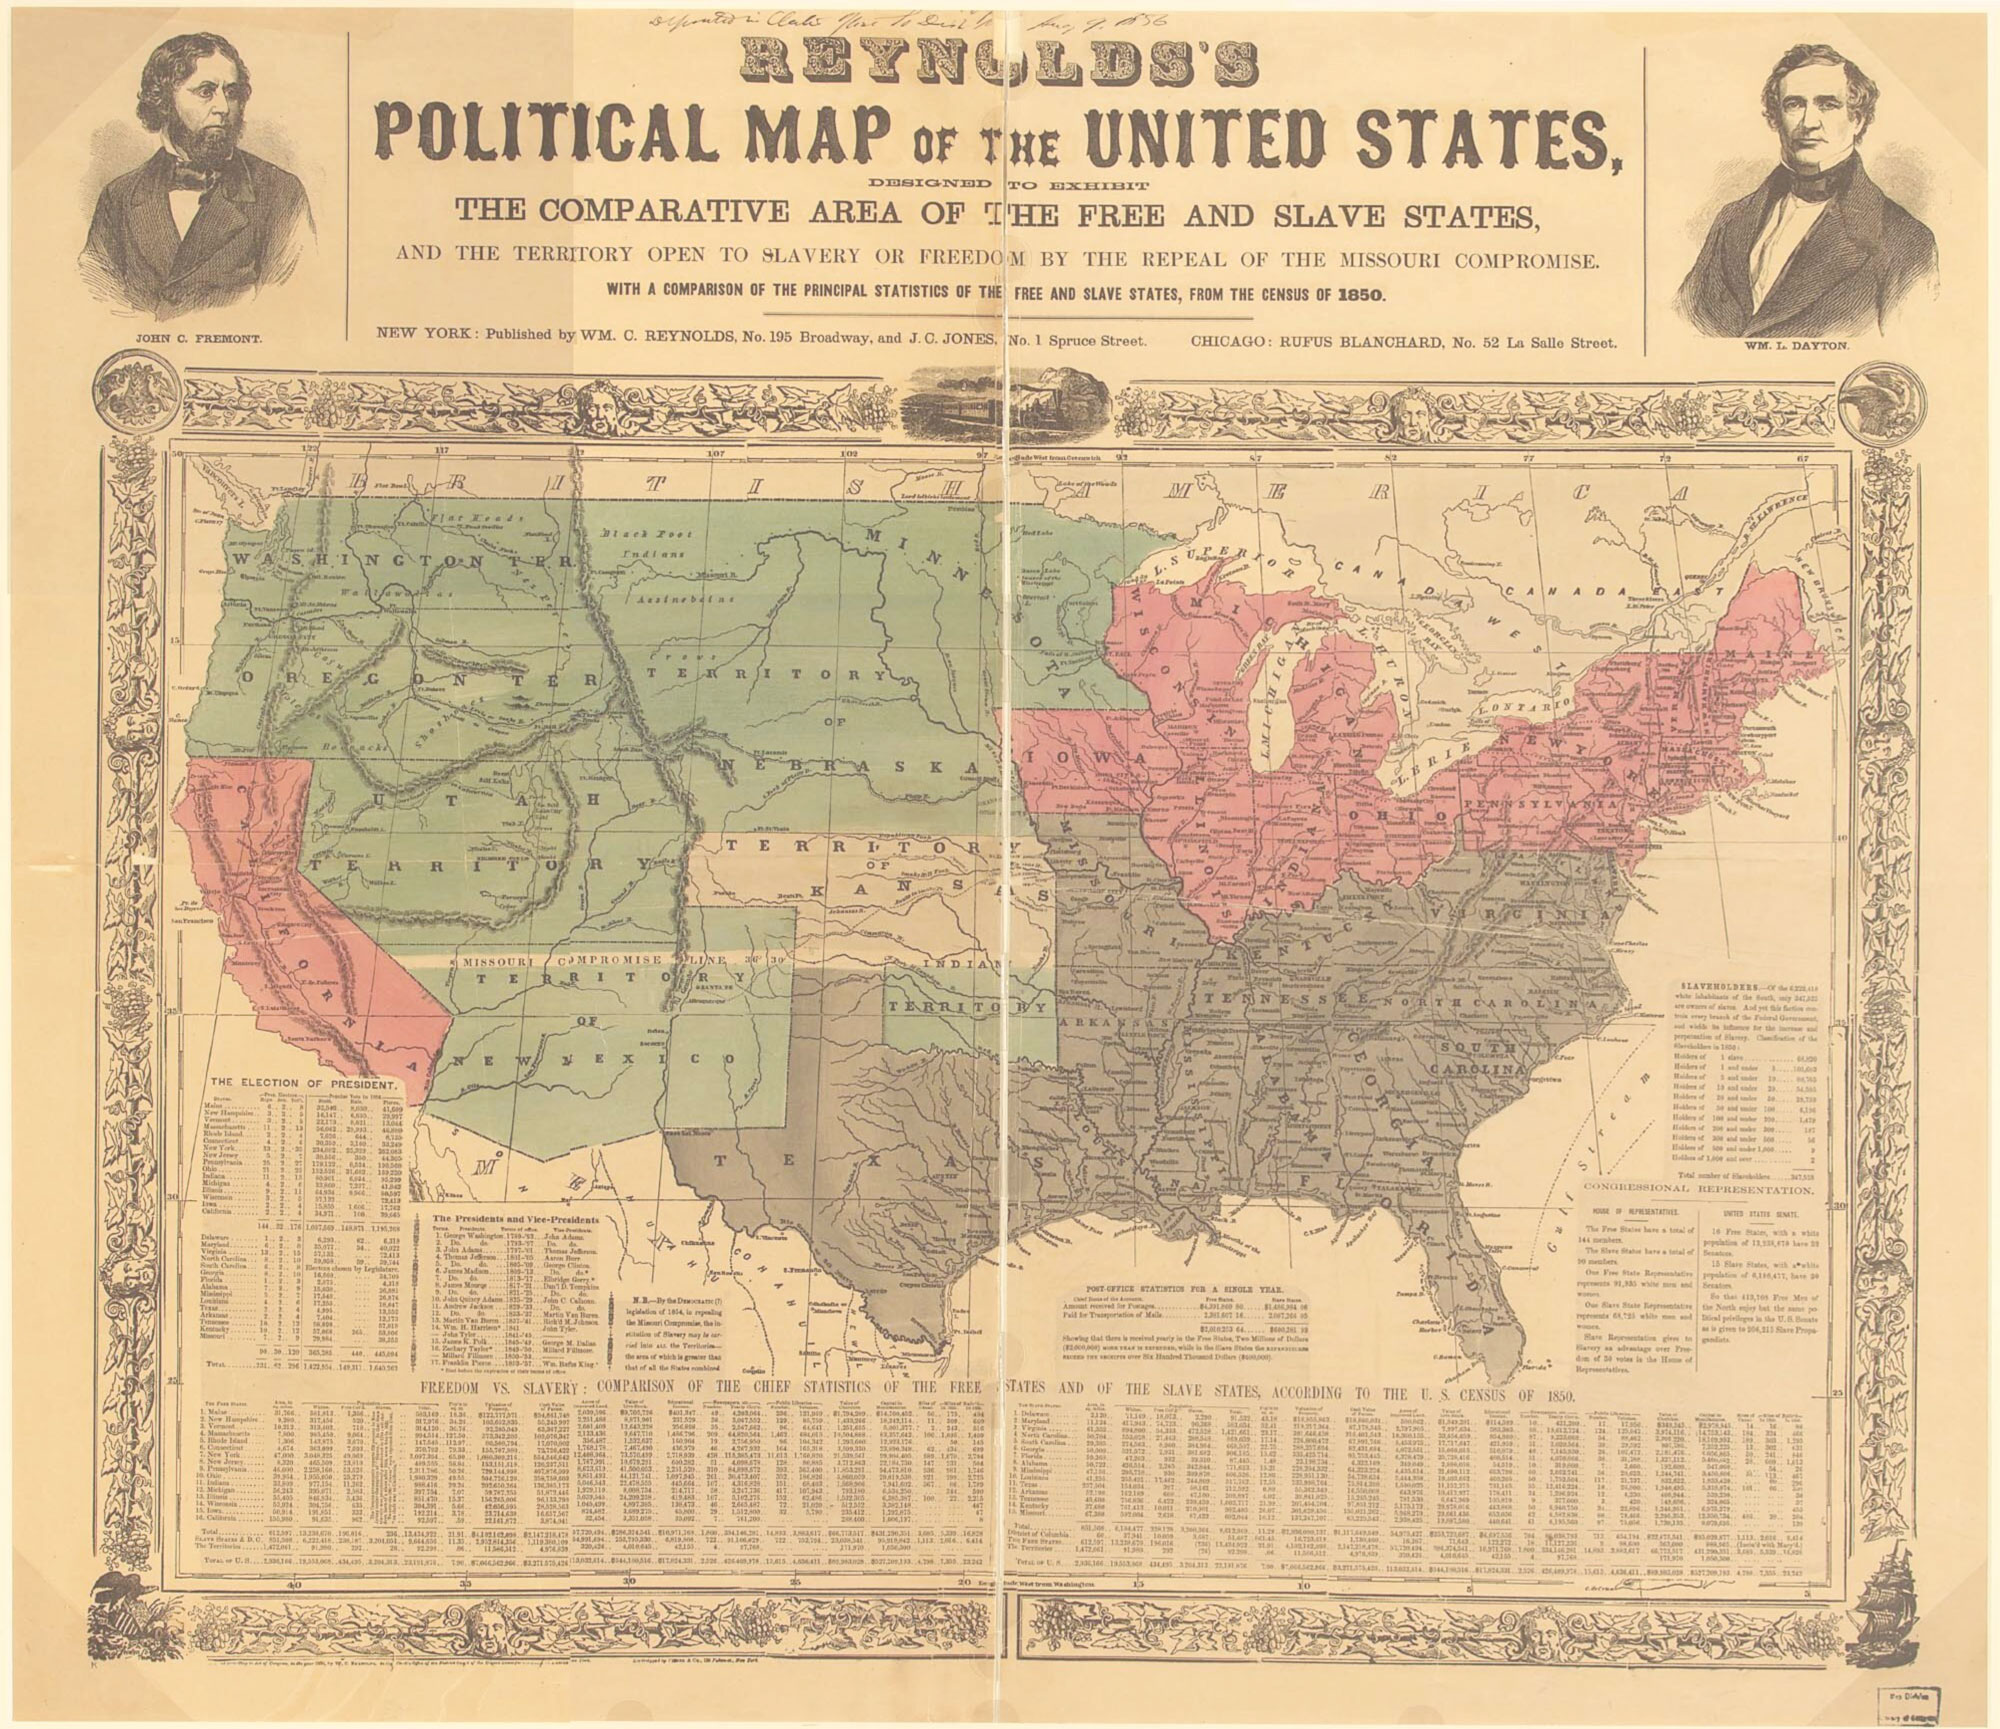 How did the North and South become more divided, helping to cause the Civil War?